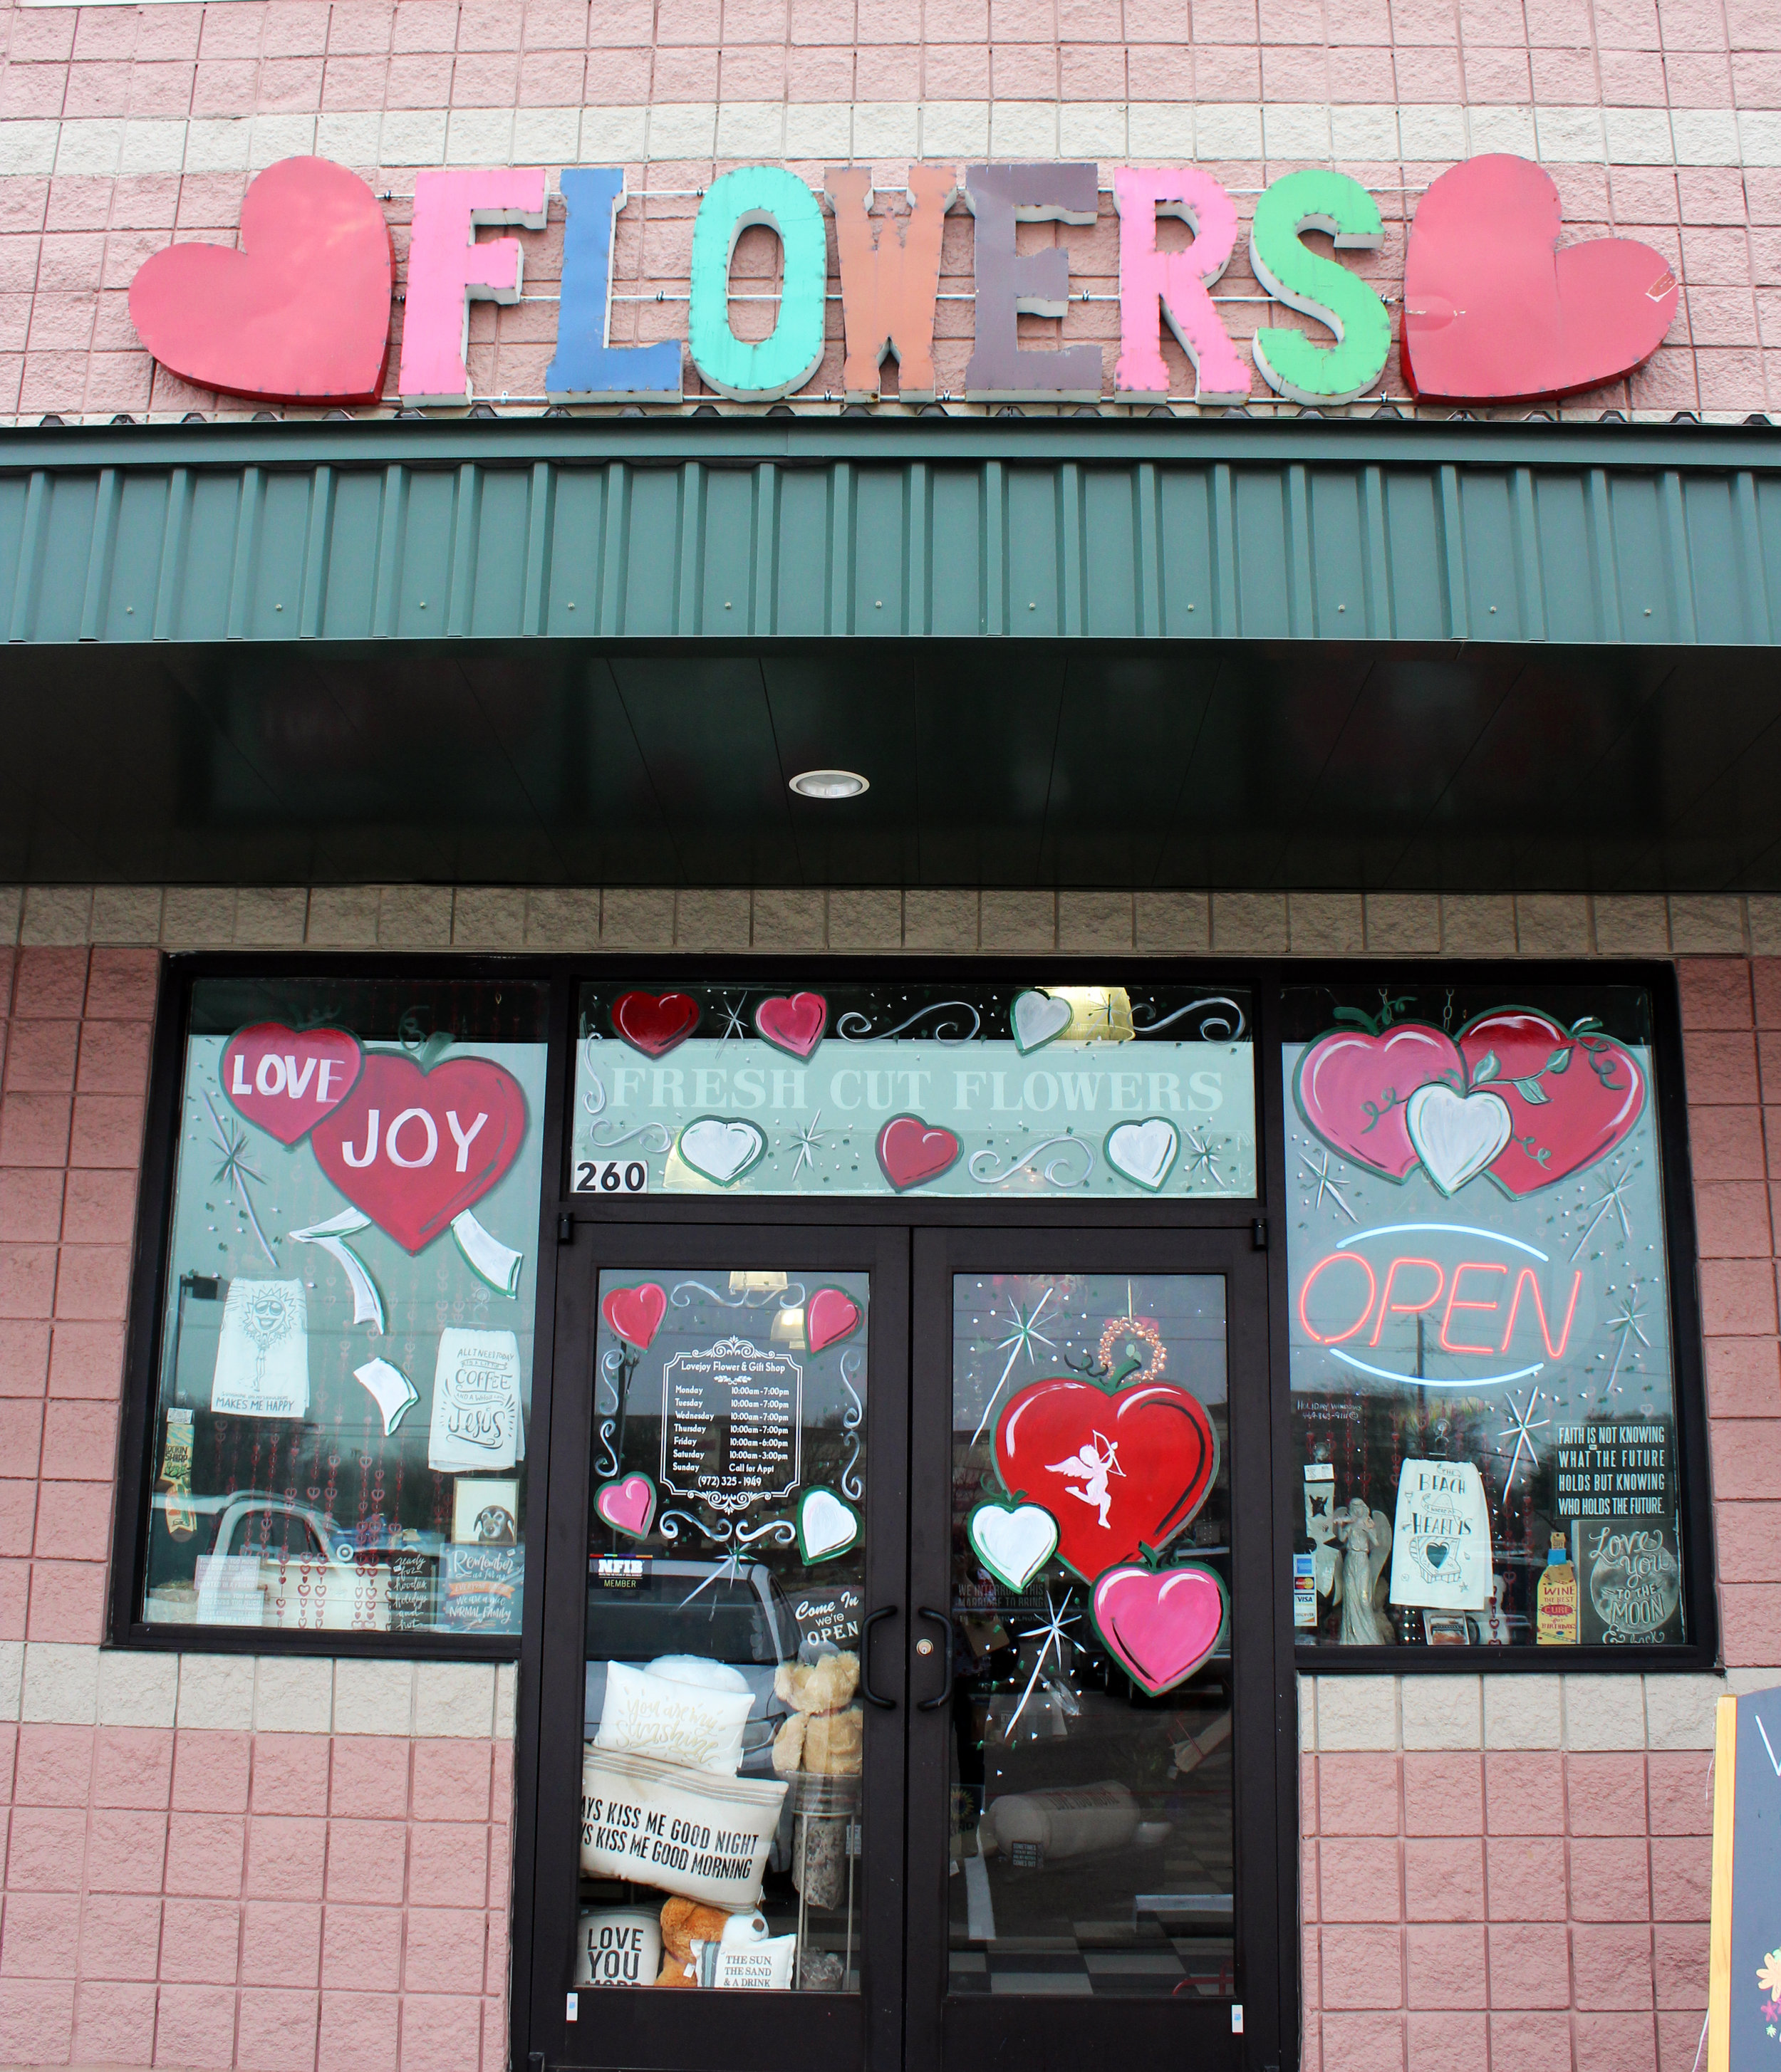 Lovejoy Flower and Gift Shop is located at 1545 E. Main St. in Allen.